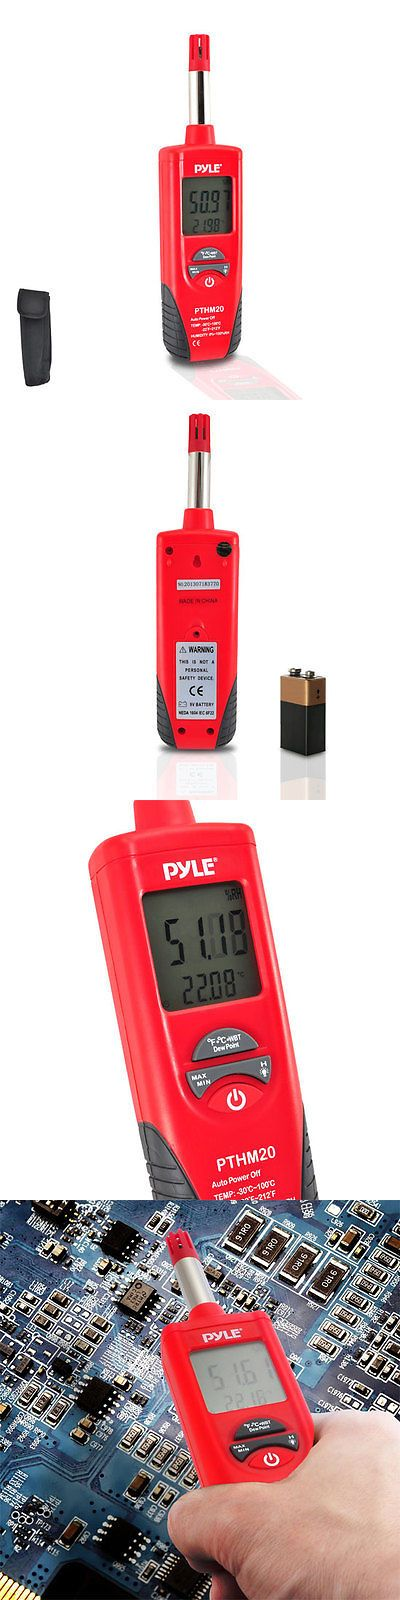 Weather Meters: New Pthm20 Temperature And Humidity Meter With Dew Point And Wet Bulb Temperature BUY IT NOW ONLY: $49.99